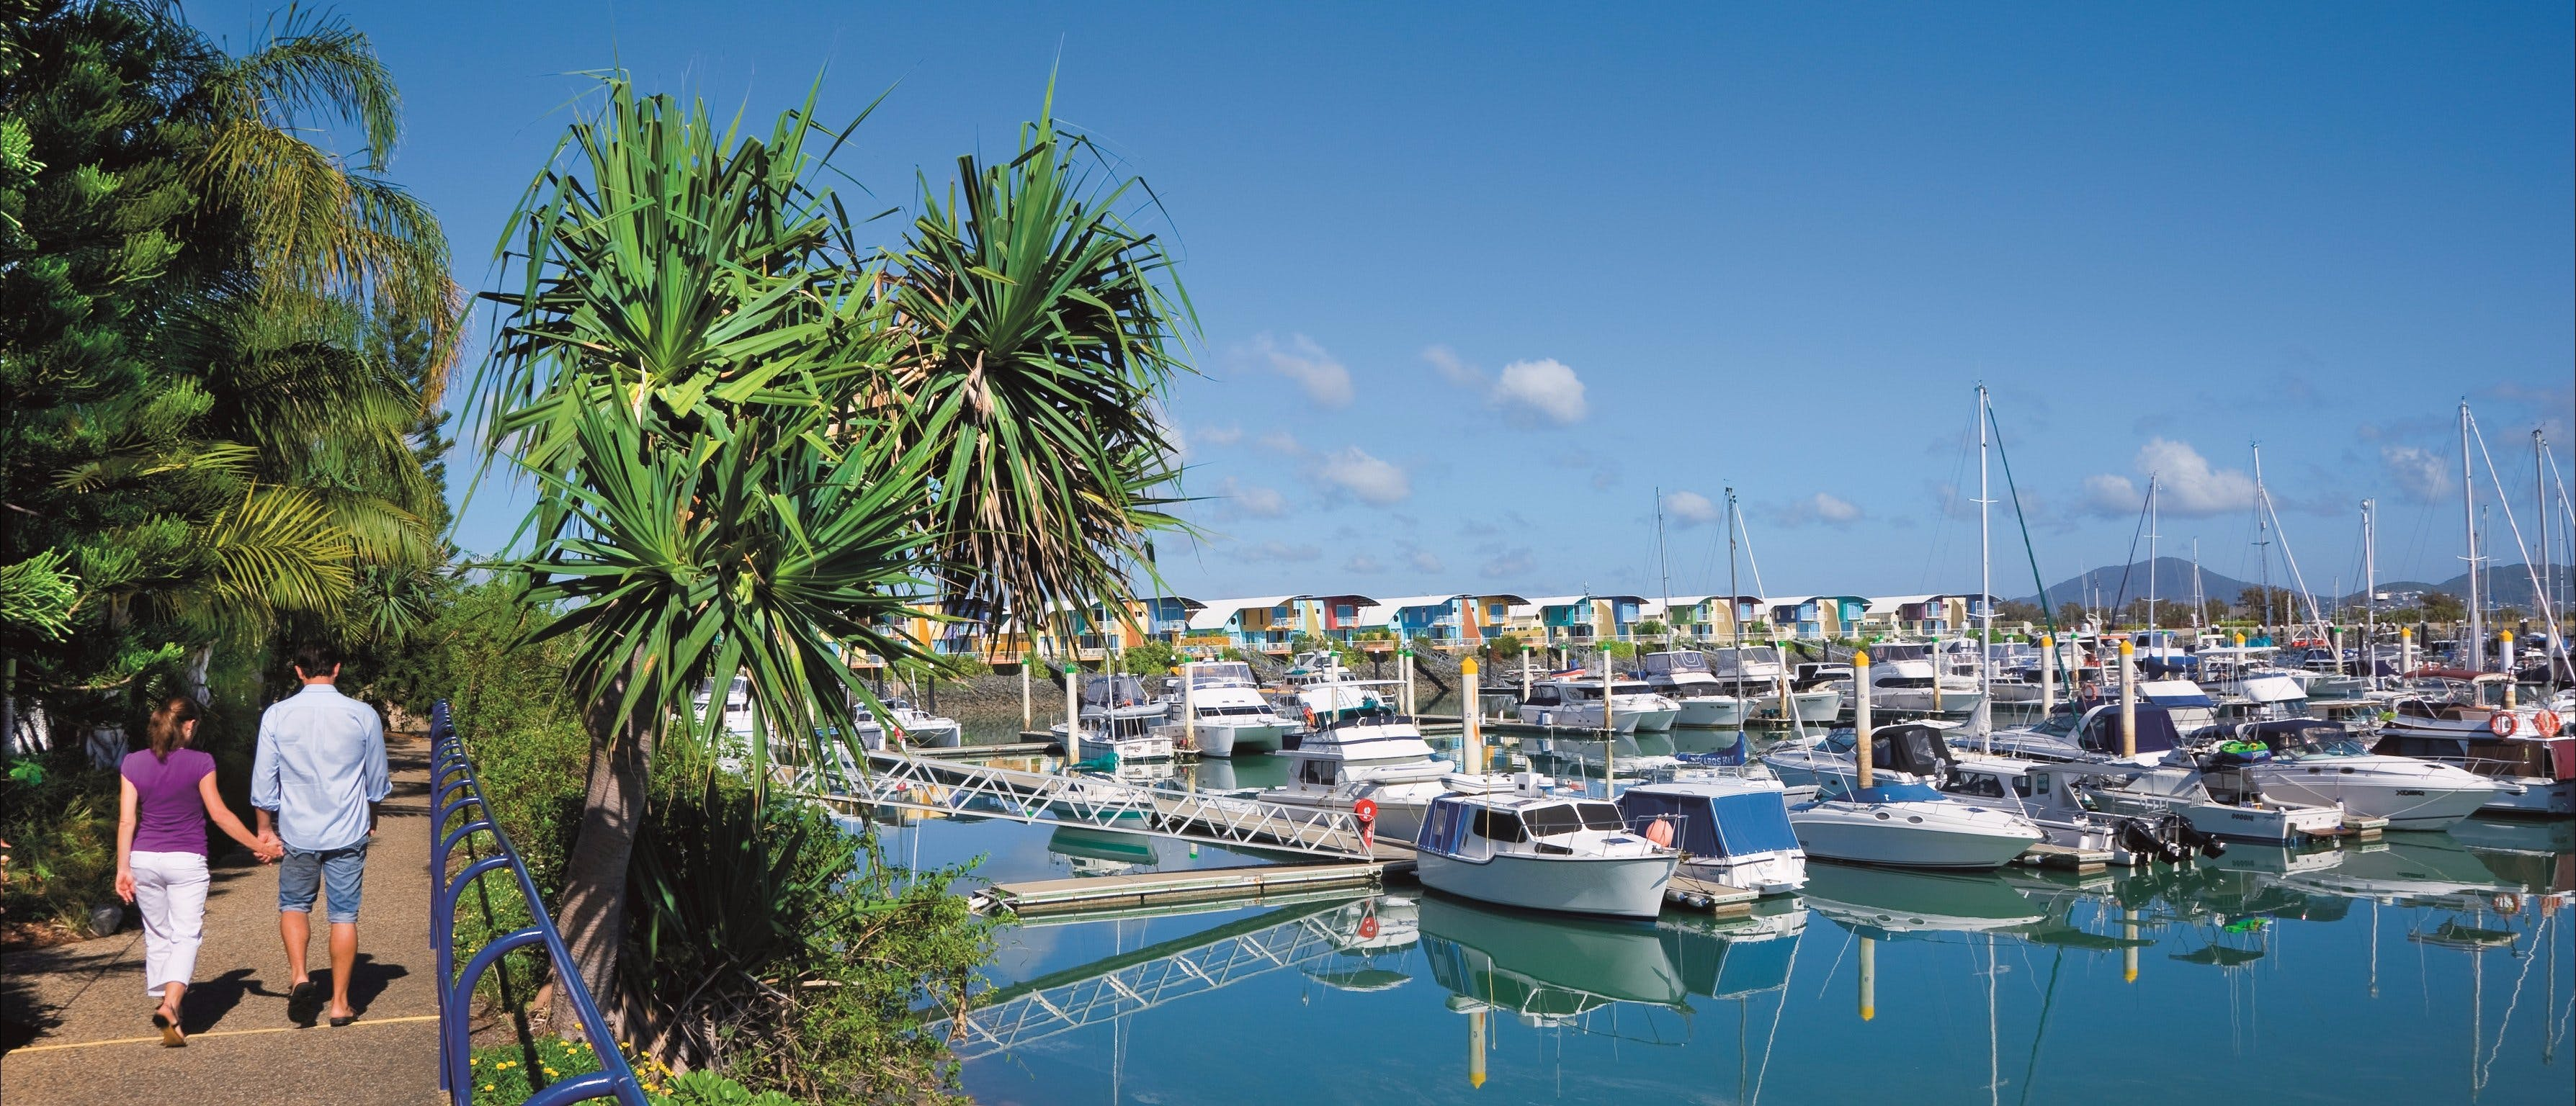 Keppel Bay Fishing Adventure - WA Accommodation